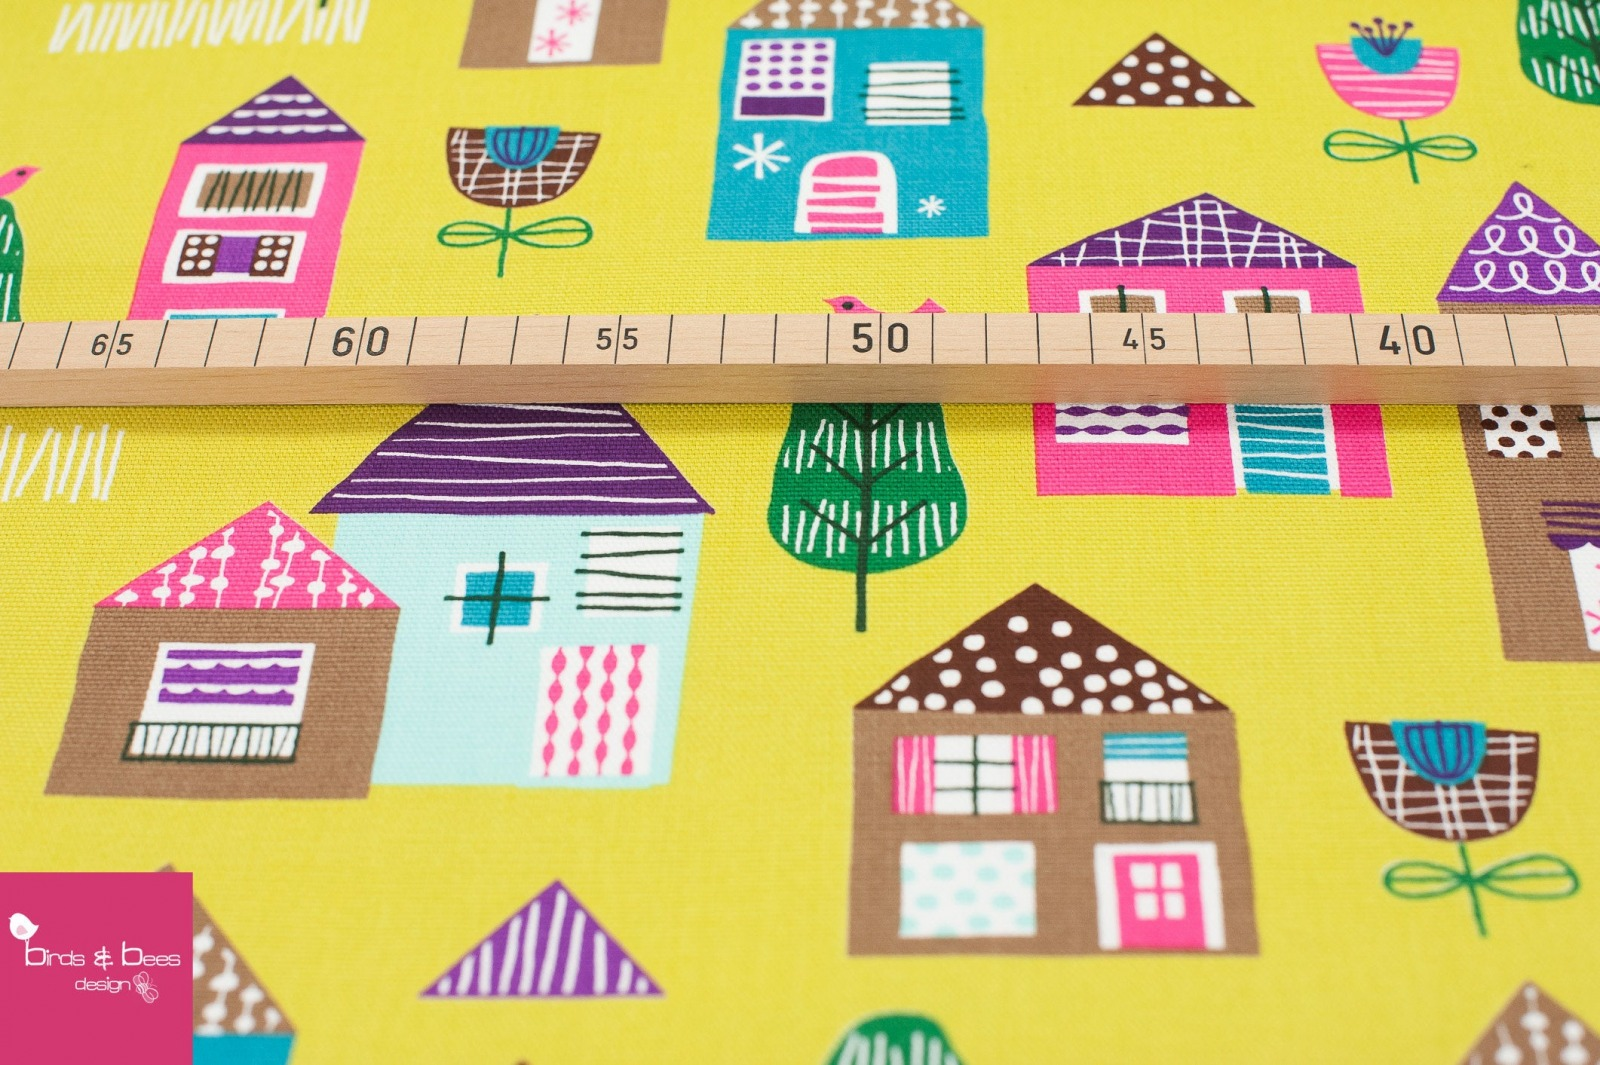 HOUSES Canvas by cosmo 2